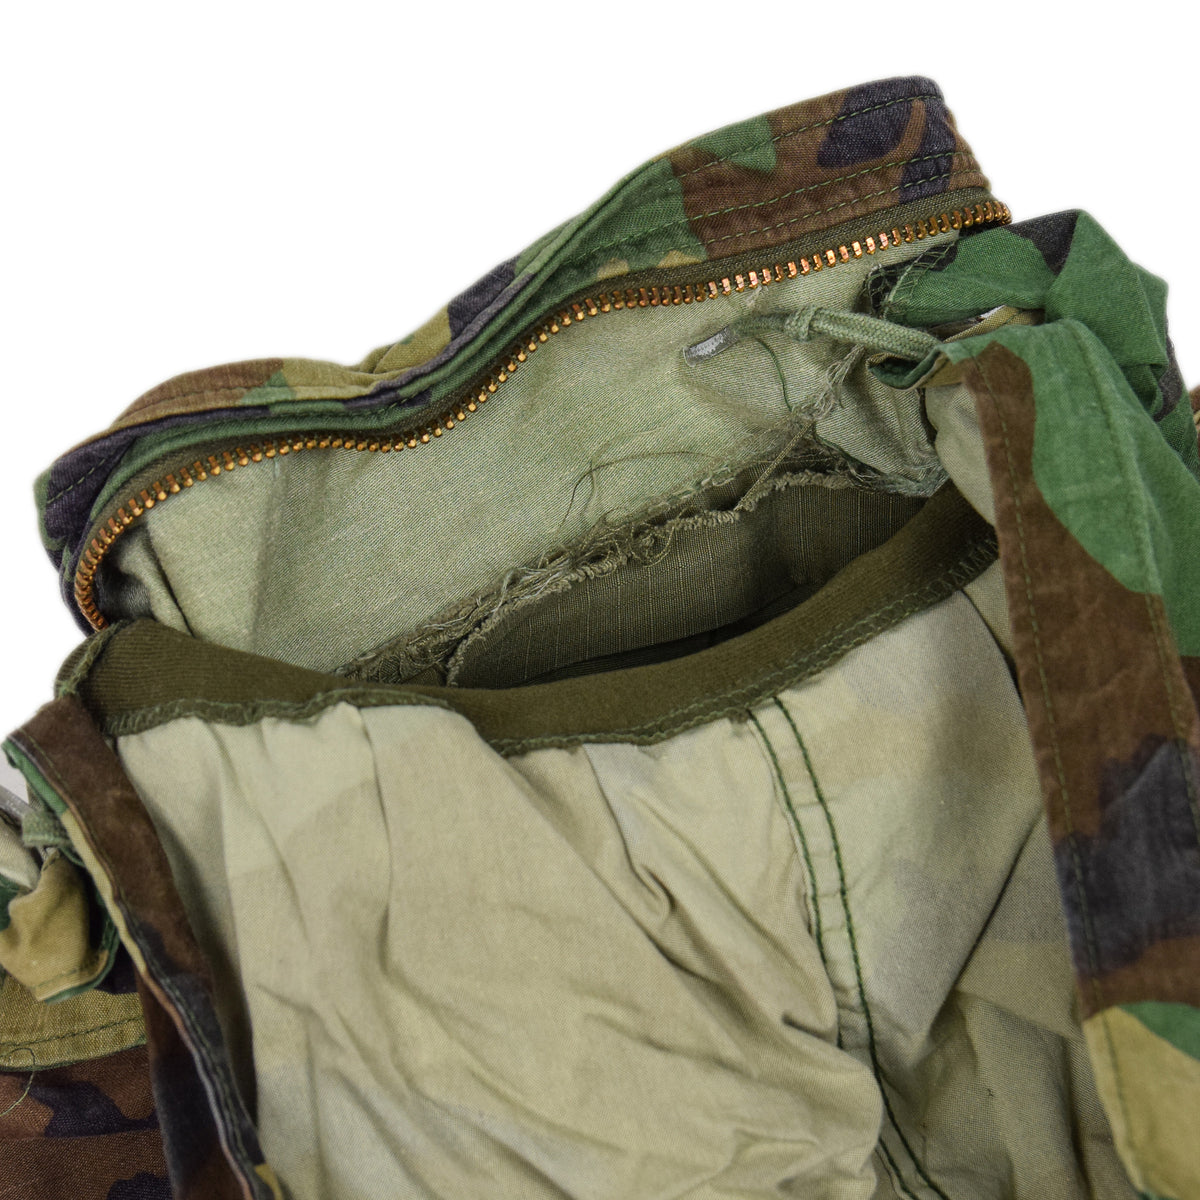 Vintage 80s US Army M-65 Woodland Camouflage Field Coat Military Jacket S Long label